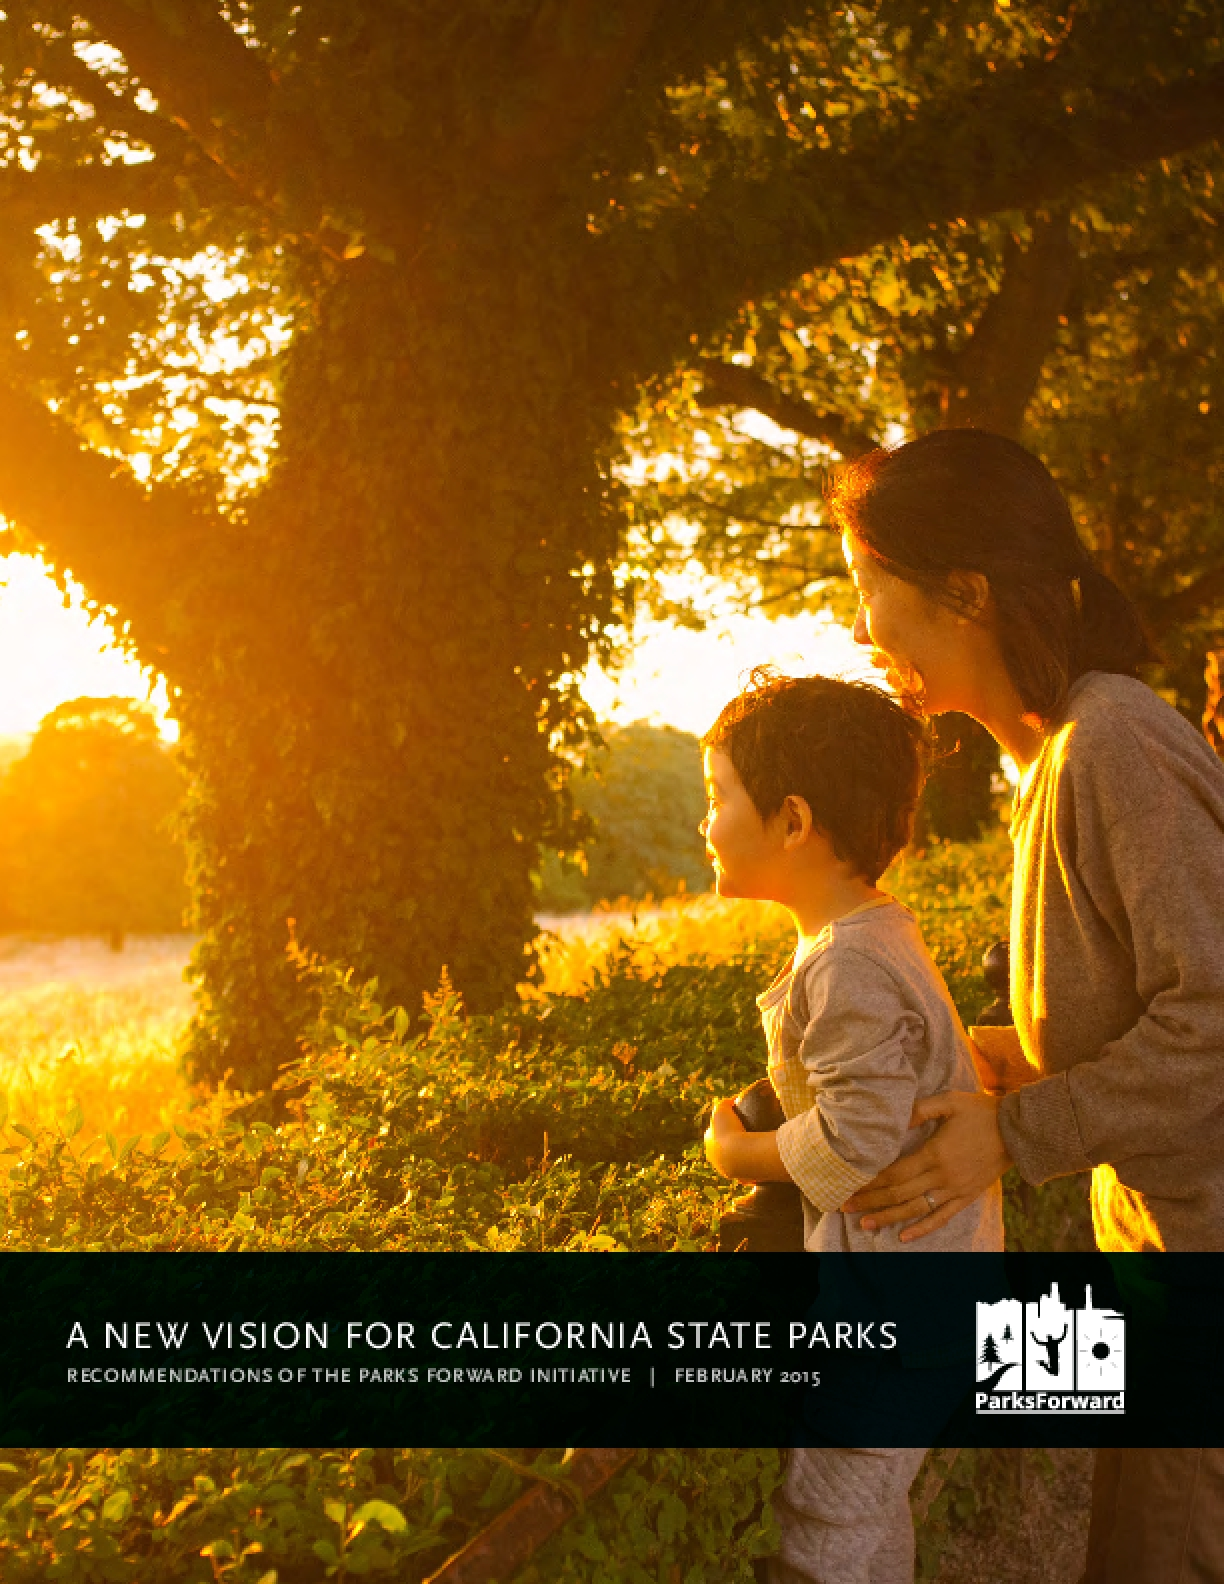 A New Vision for California State Parks: Recommendations of the Parks Forward Initiative